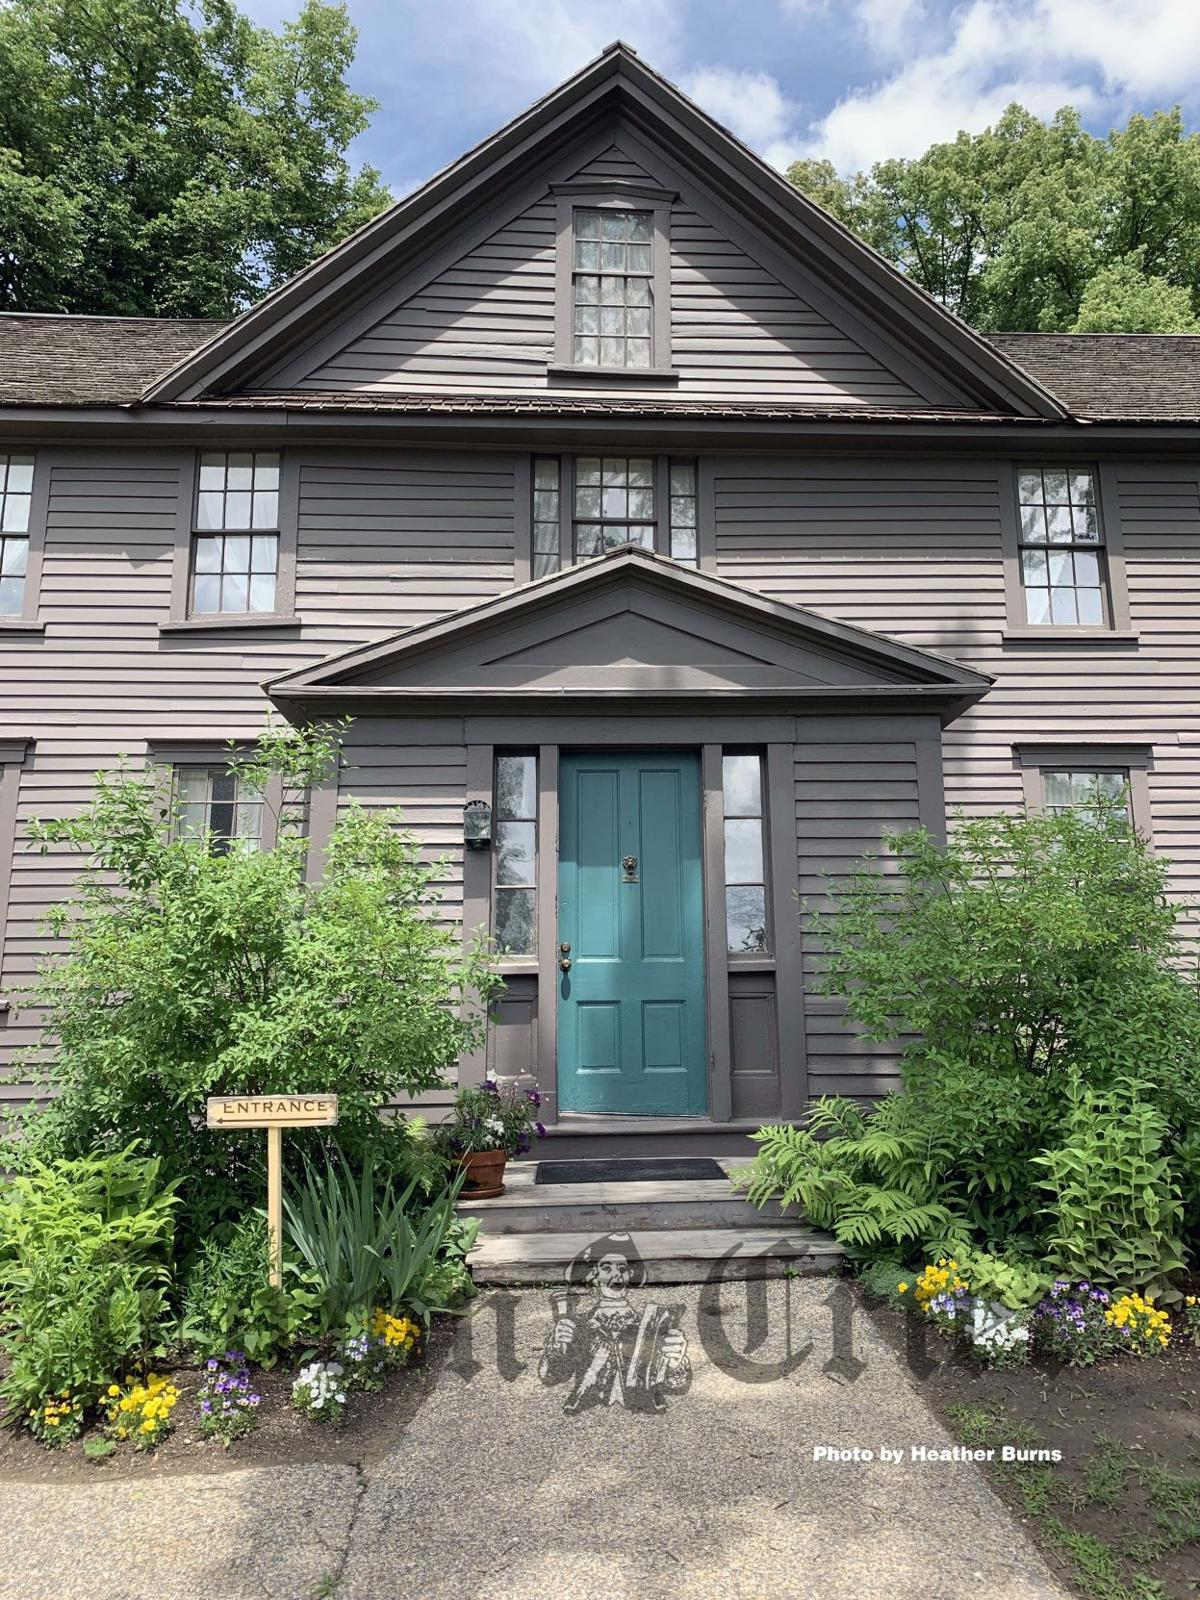 The Louisa May Alcott Orchard House